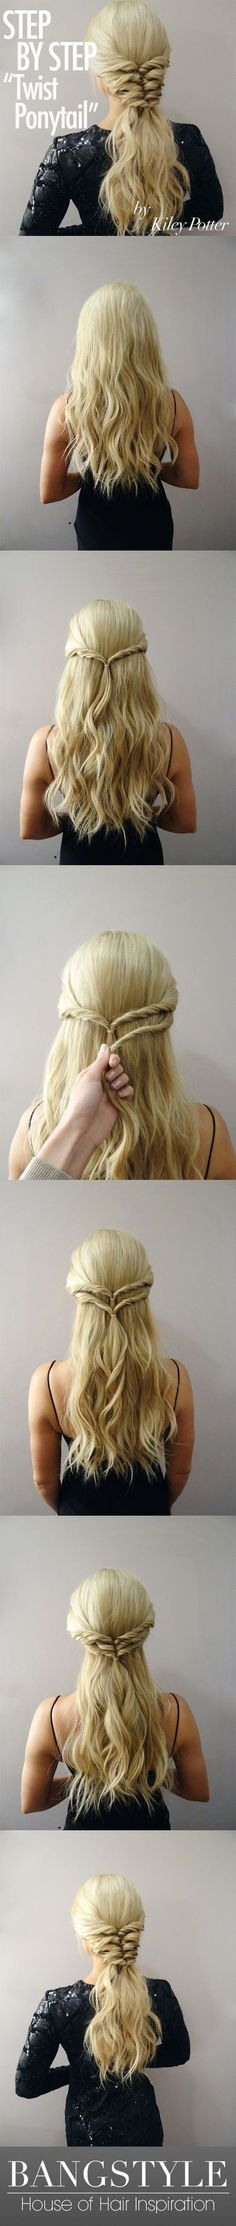 Twist Ponytail Tutorial by Kiley Potter - Bang. Twist Ponytail Tutorial by Kiley Potter – Bangstyle This gives a partial braid look, very pretty. Ponytail Tutorial, Half Updo Tutorial, Twist Ponytail, Ponytail Easy, Ponytail Styles, Perfect Ponytail, Perfect Hairstyle, Quick Updo, Braids For Long Hair